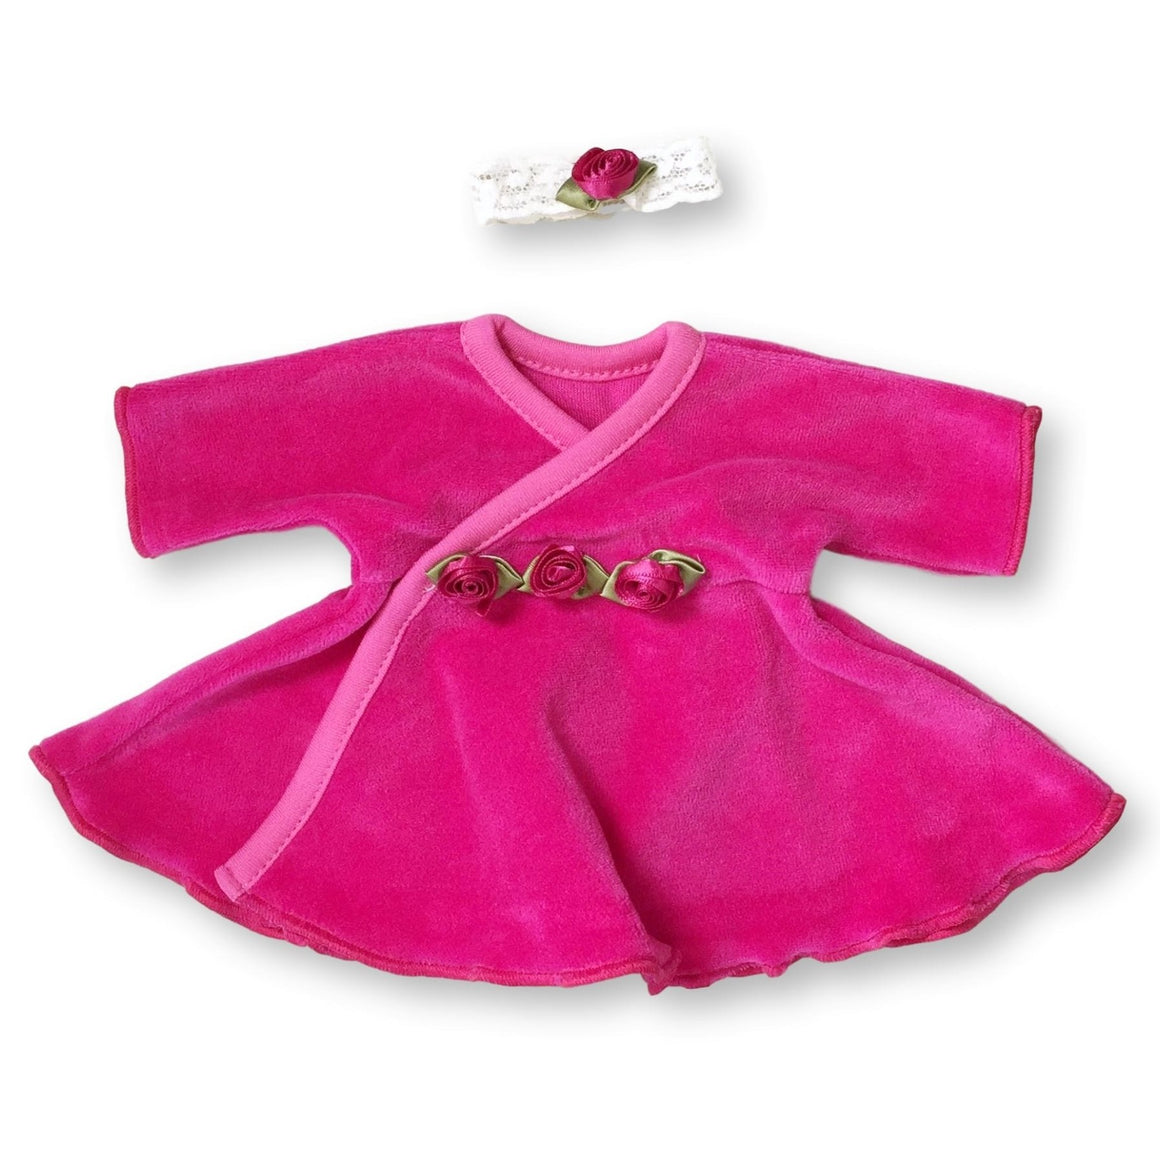 Preemie Dress + Headband // Cherry Velour-NICU Dresses-UniqueKidz